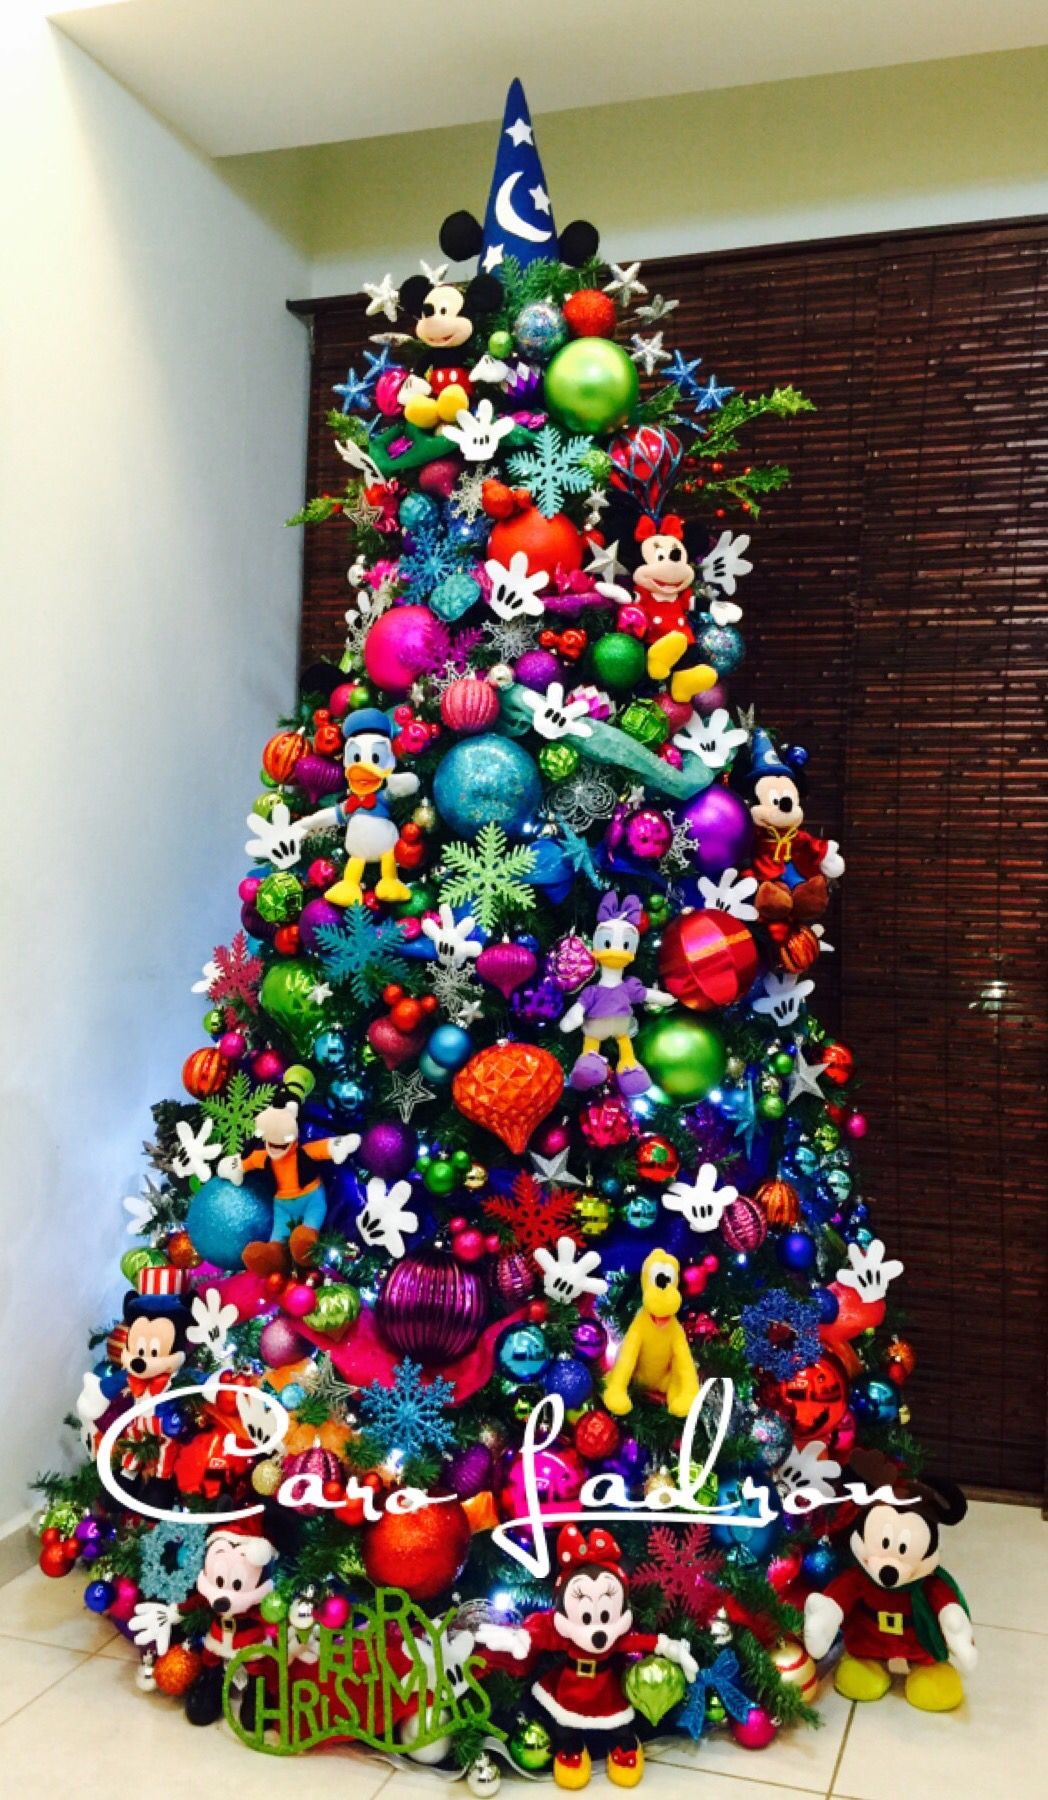 mickey mouse tree christmas tree ideas 2016 disney christmas tree decorations mickey mouse christmas - When Is Disney Decorated For Christmas